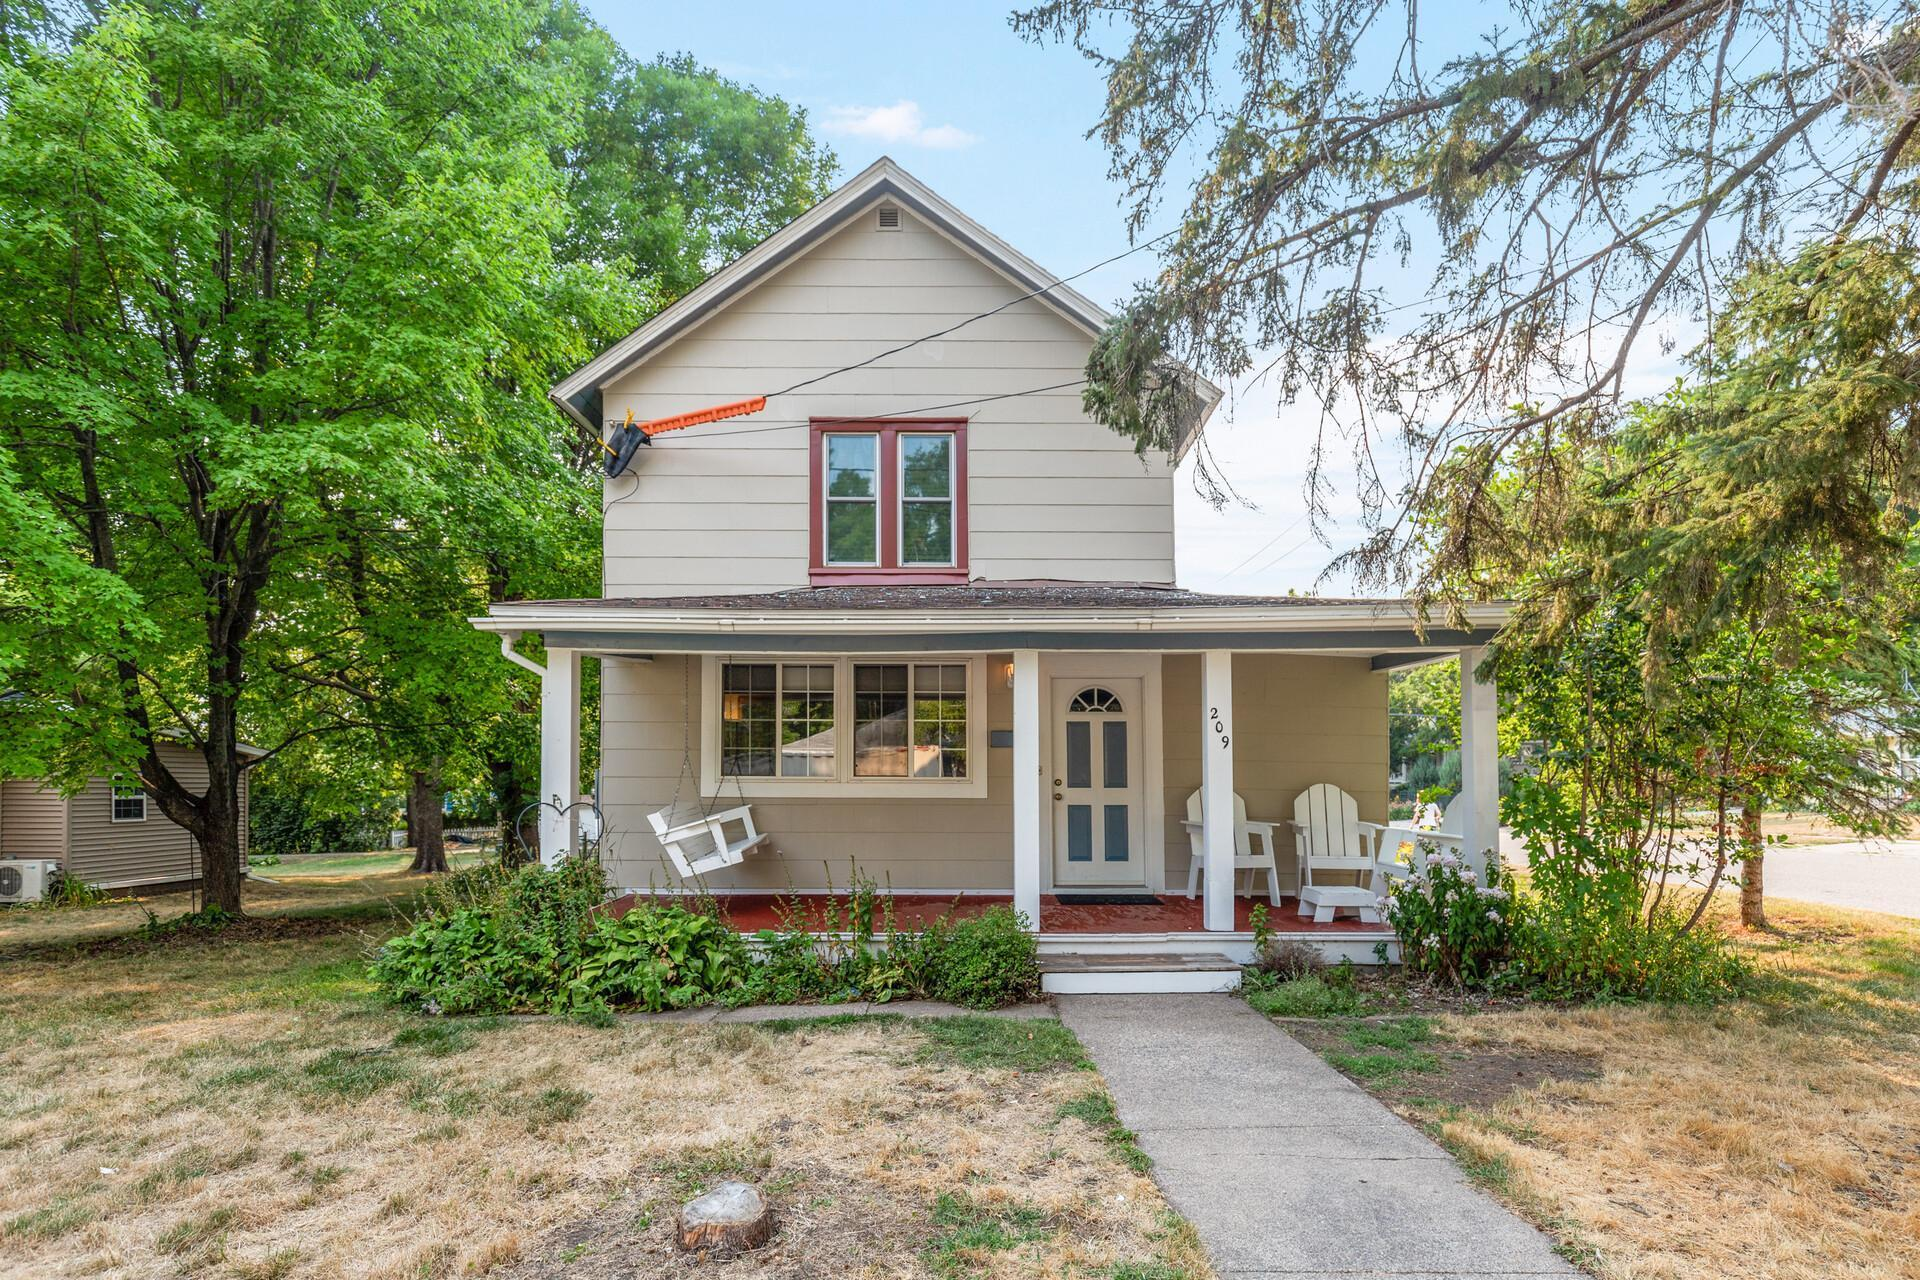 209 2nd Avenue, Buffalo, Minnesota 55313, 4 Bedrooms Bedrooms, ,1 BathroomBathrooms,Residential,For Sale,2nd,NST6068780